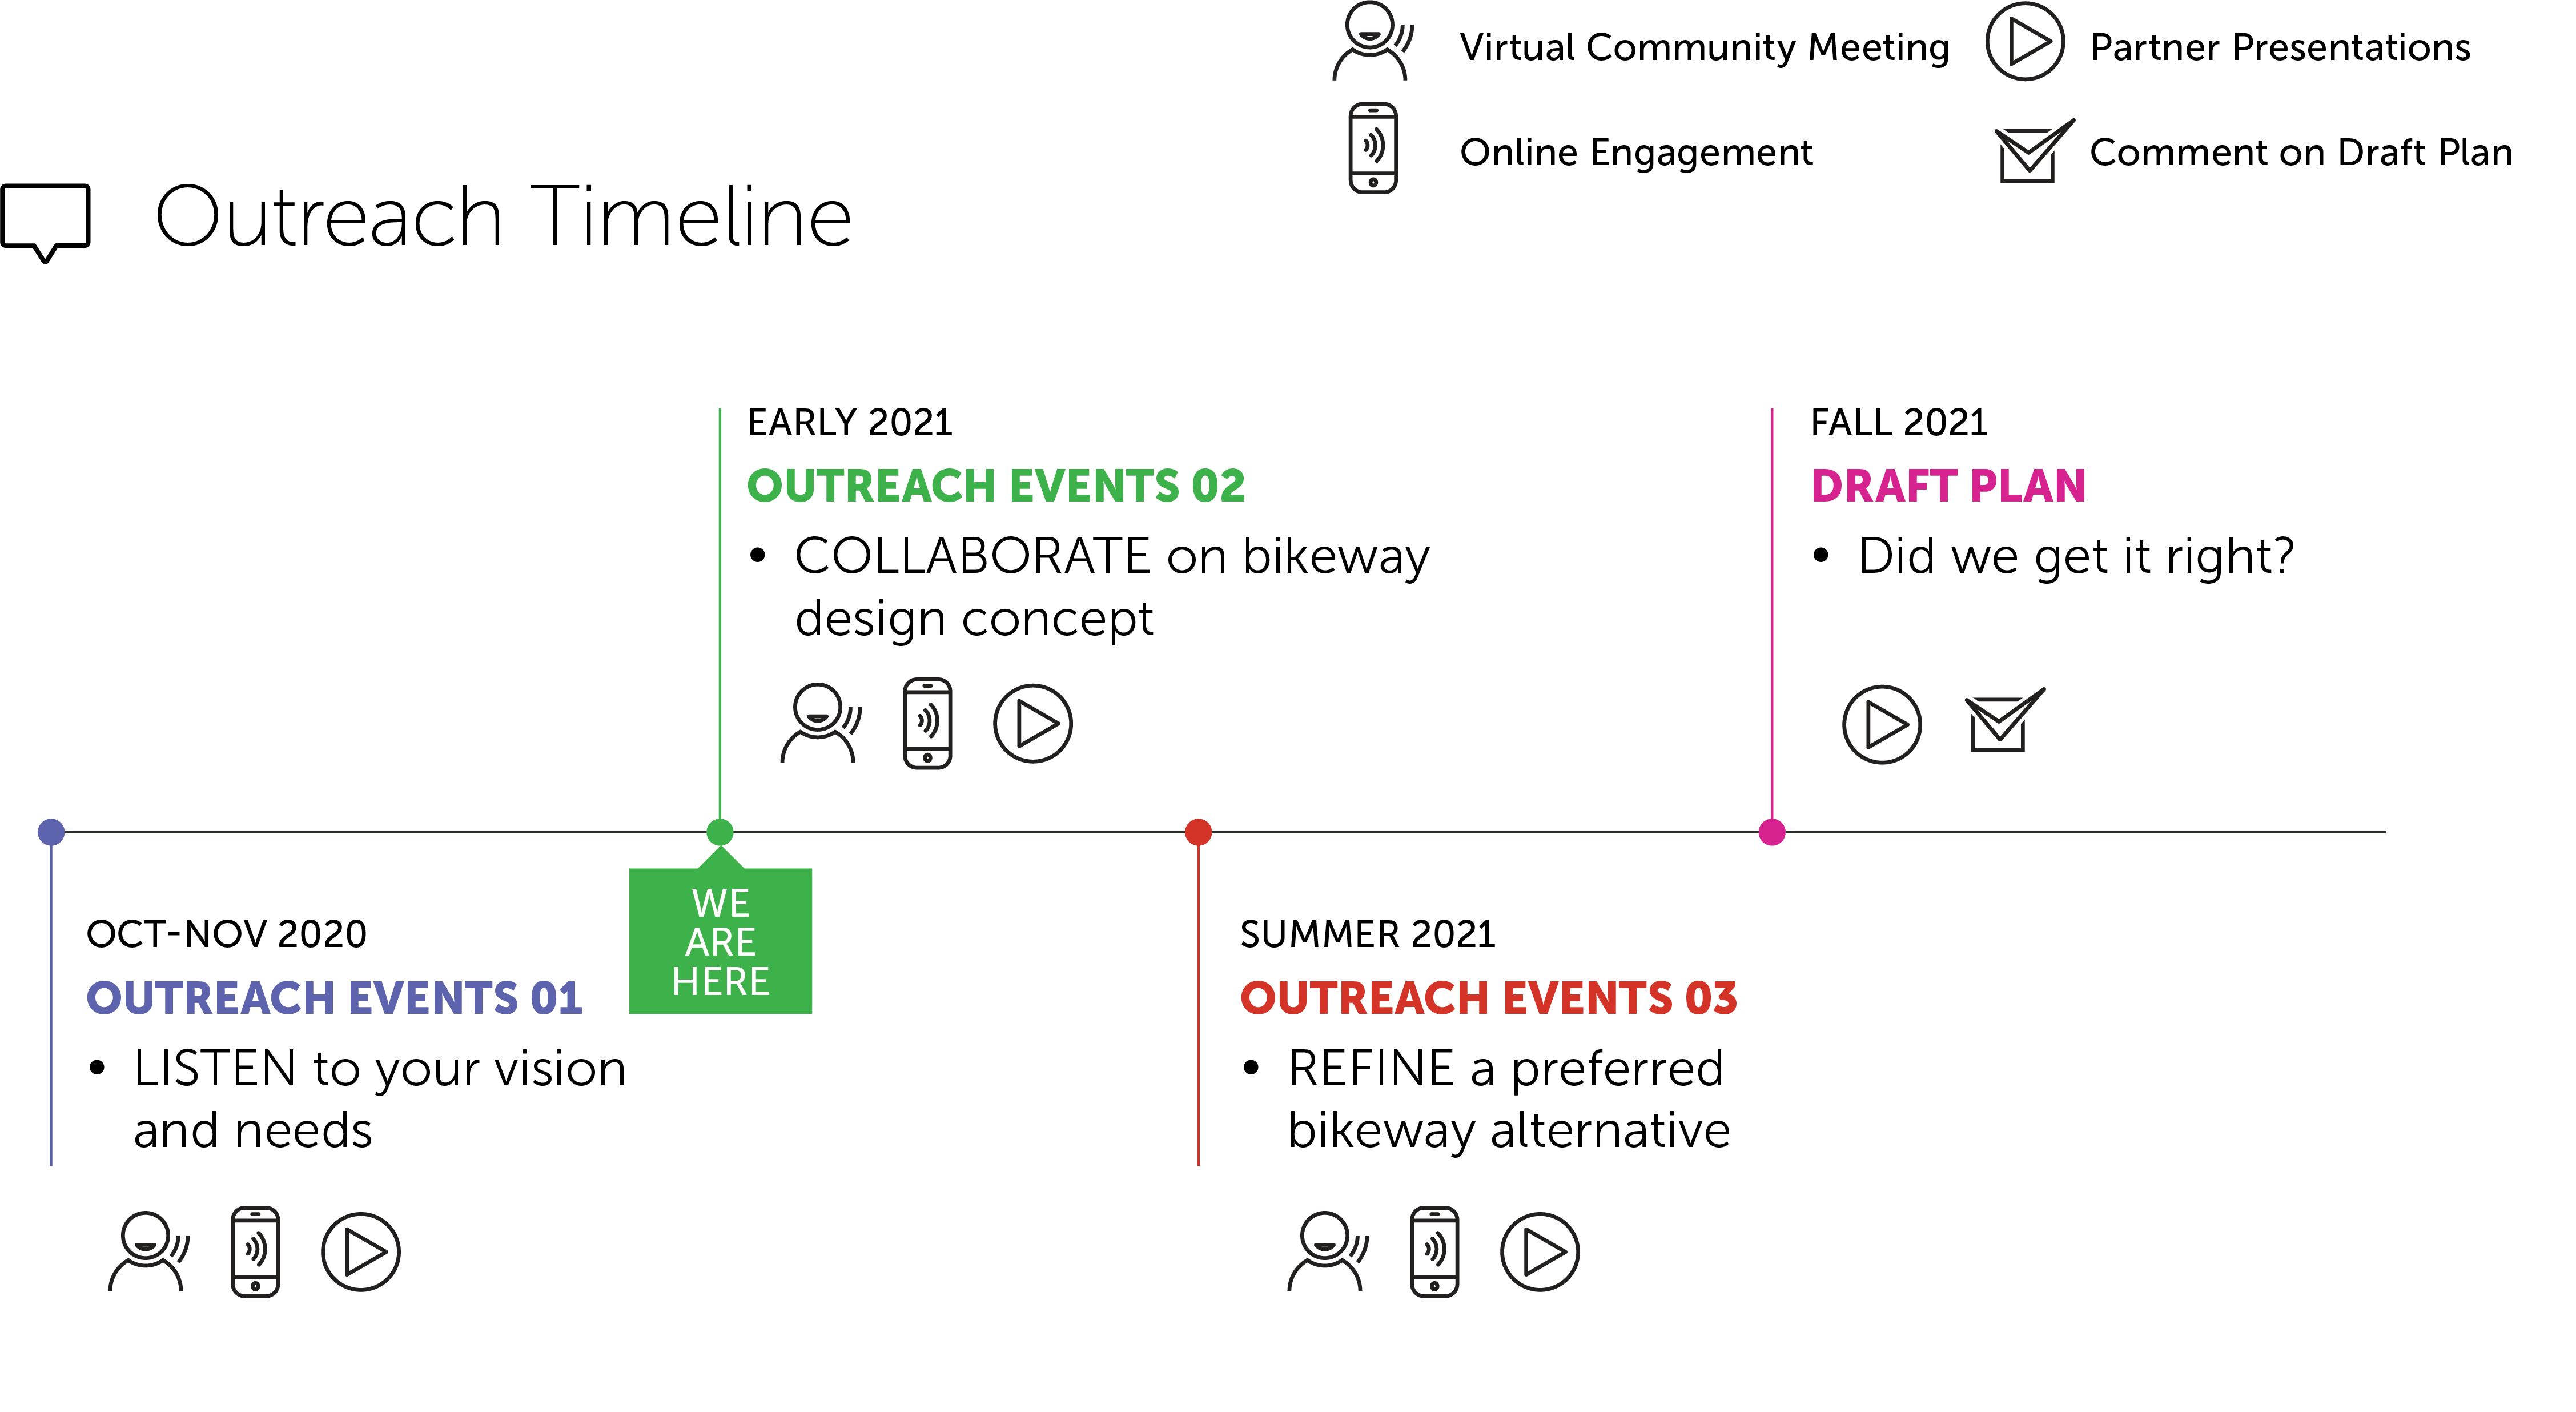 Timeline of engagement events for the Central Bikeway Study. The purpose of the second round of engagement events in March 2021 is to collaborate on bikeway design concept.